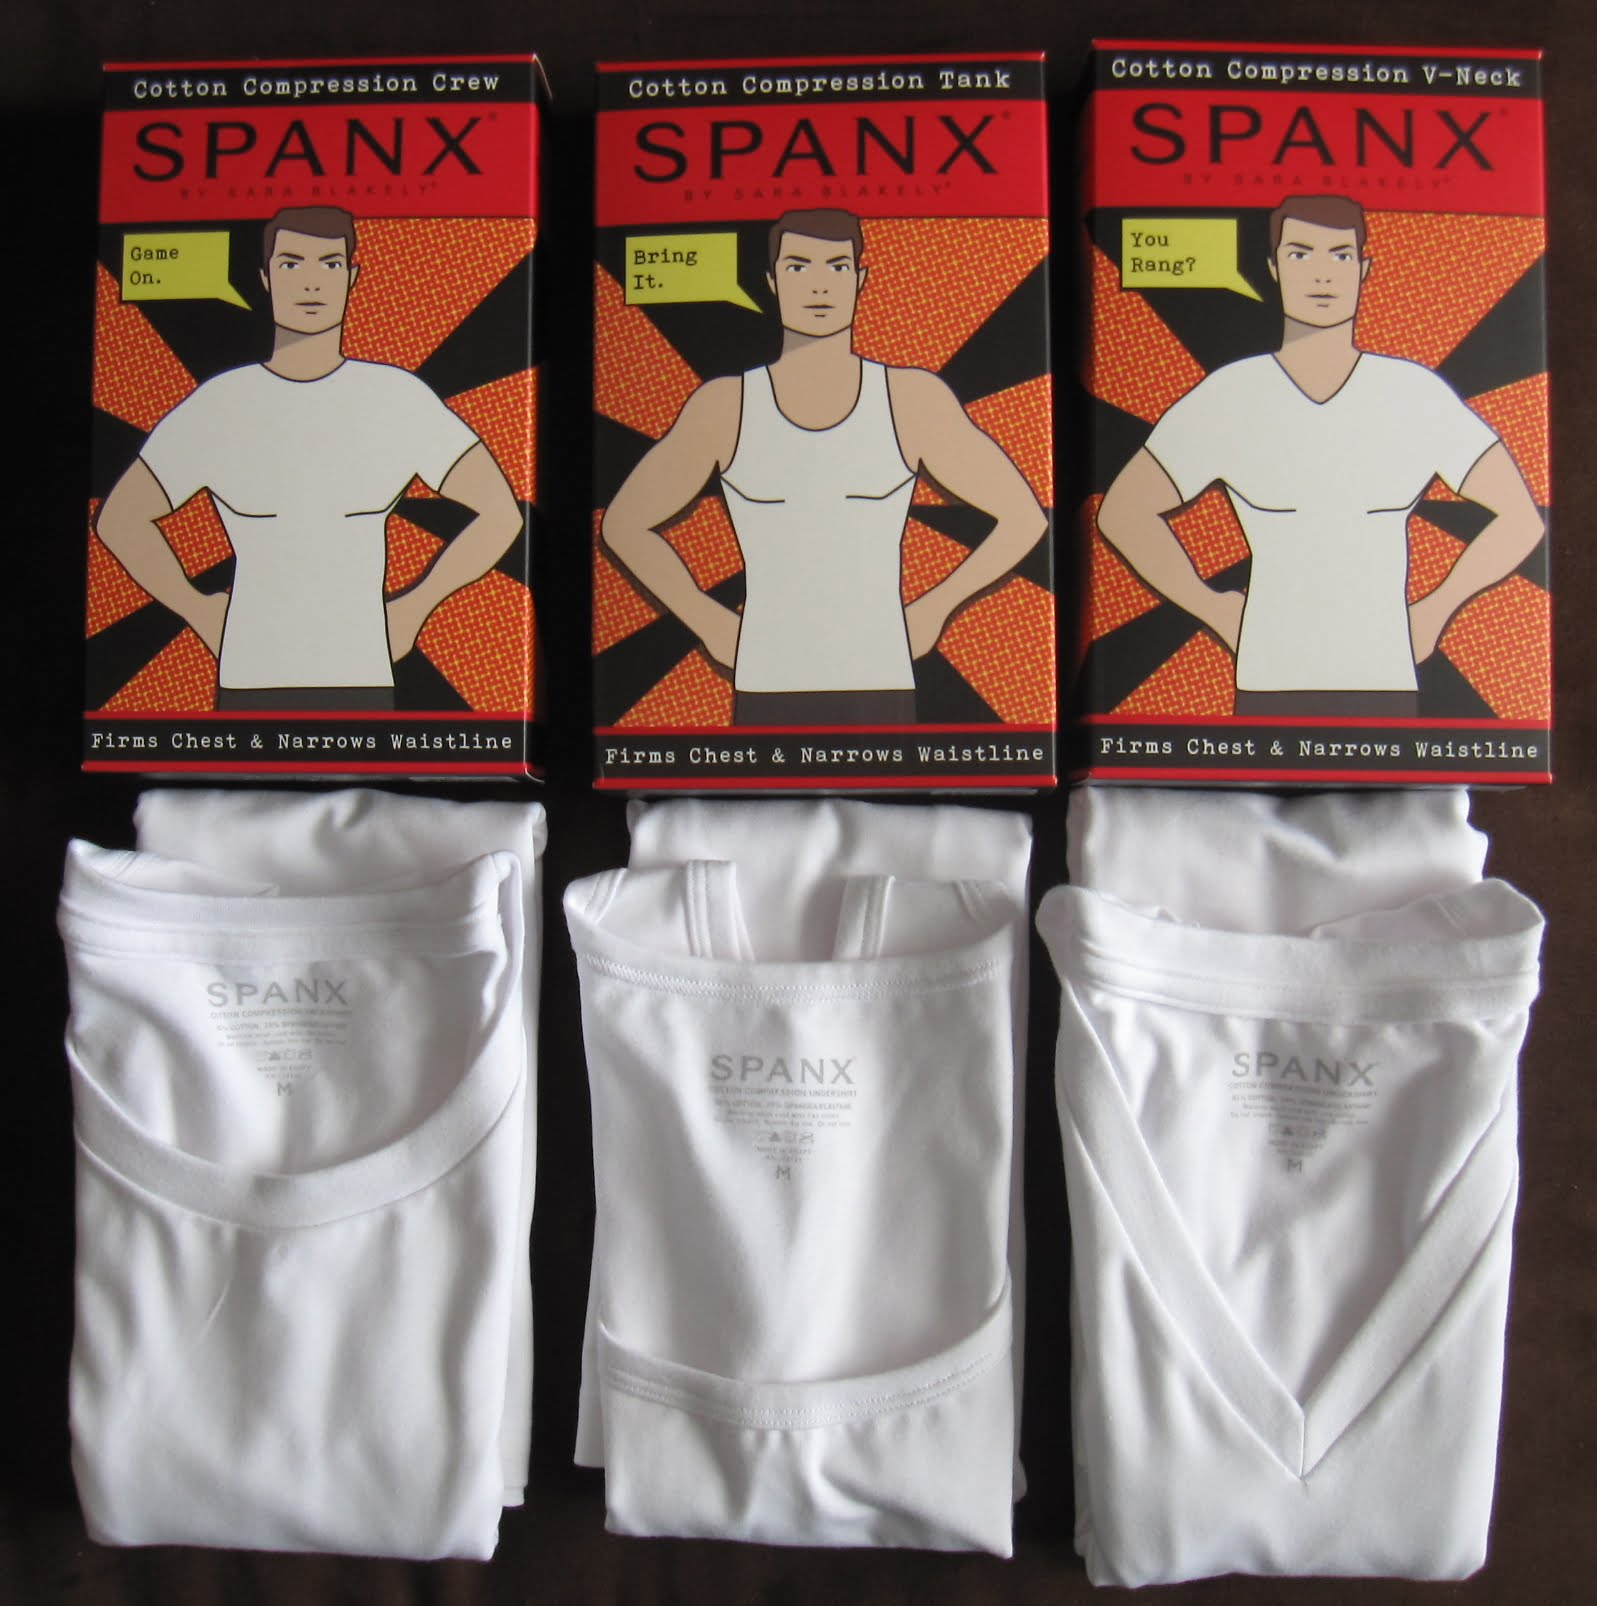 Spandex Waist Shaper Reviews